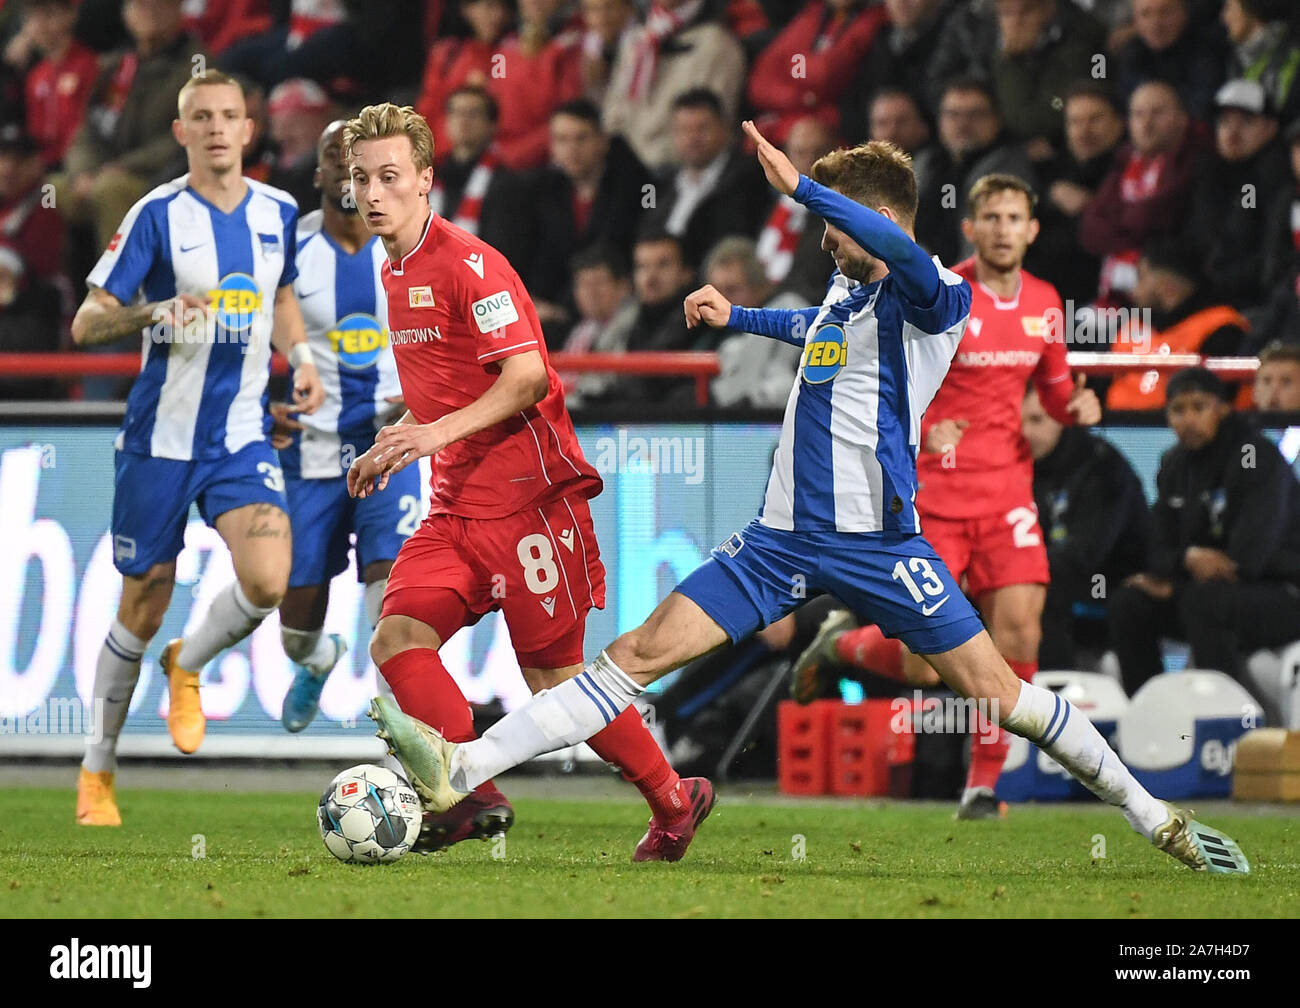 Joshua Mees High Resolution Stock Photography And Images Alamy